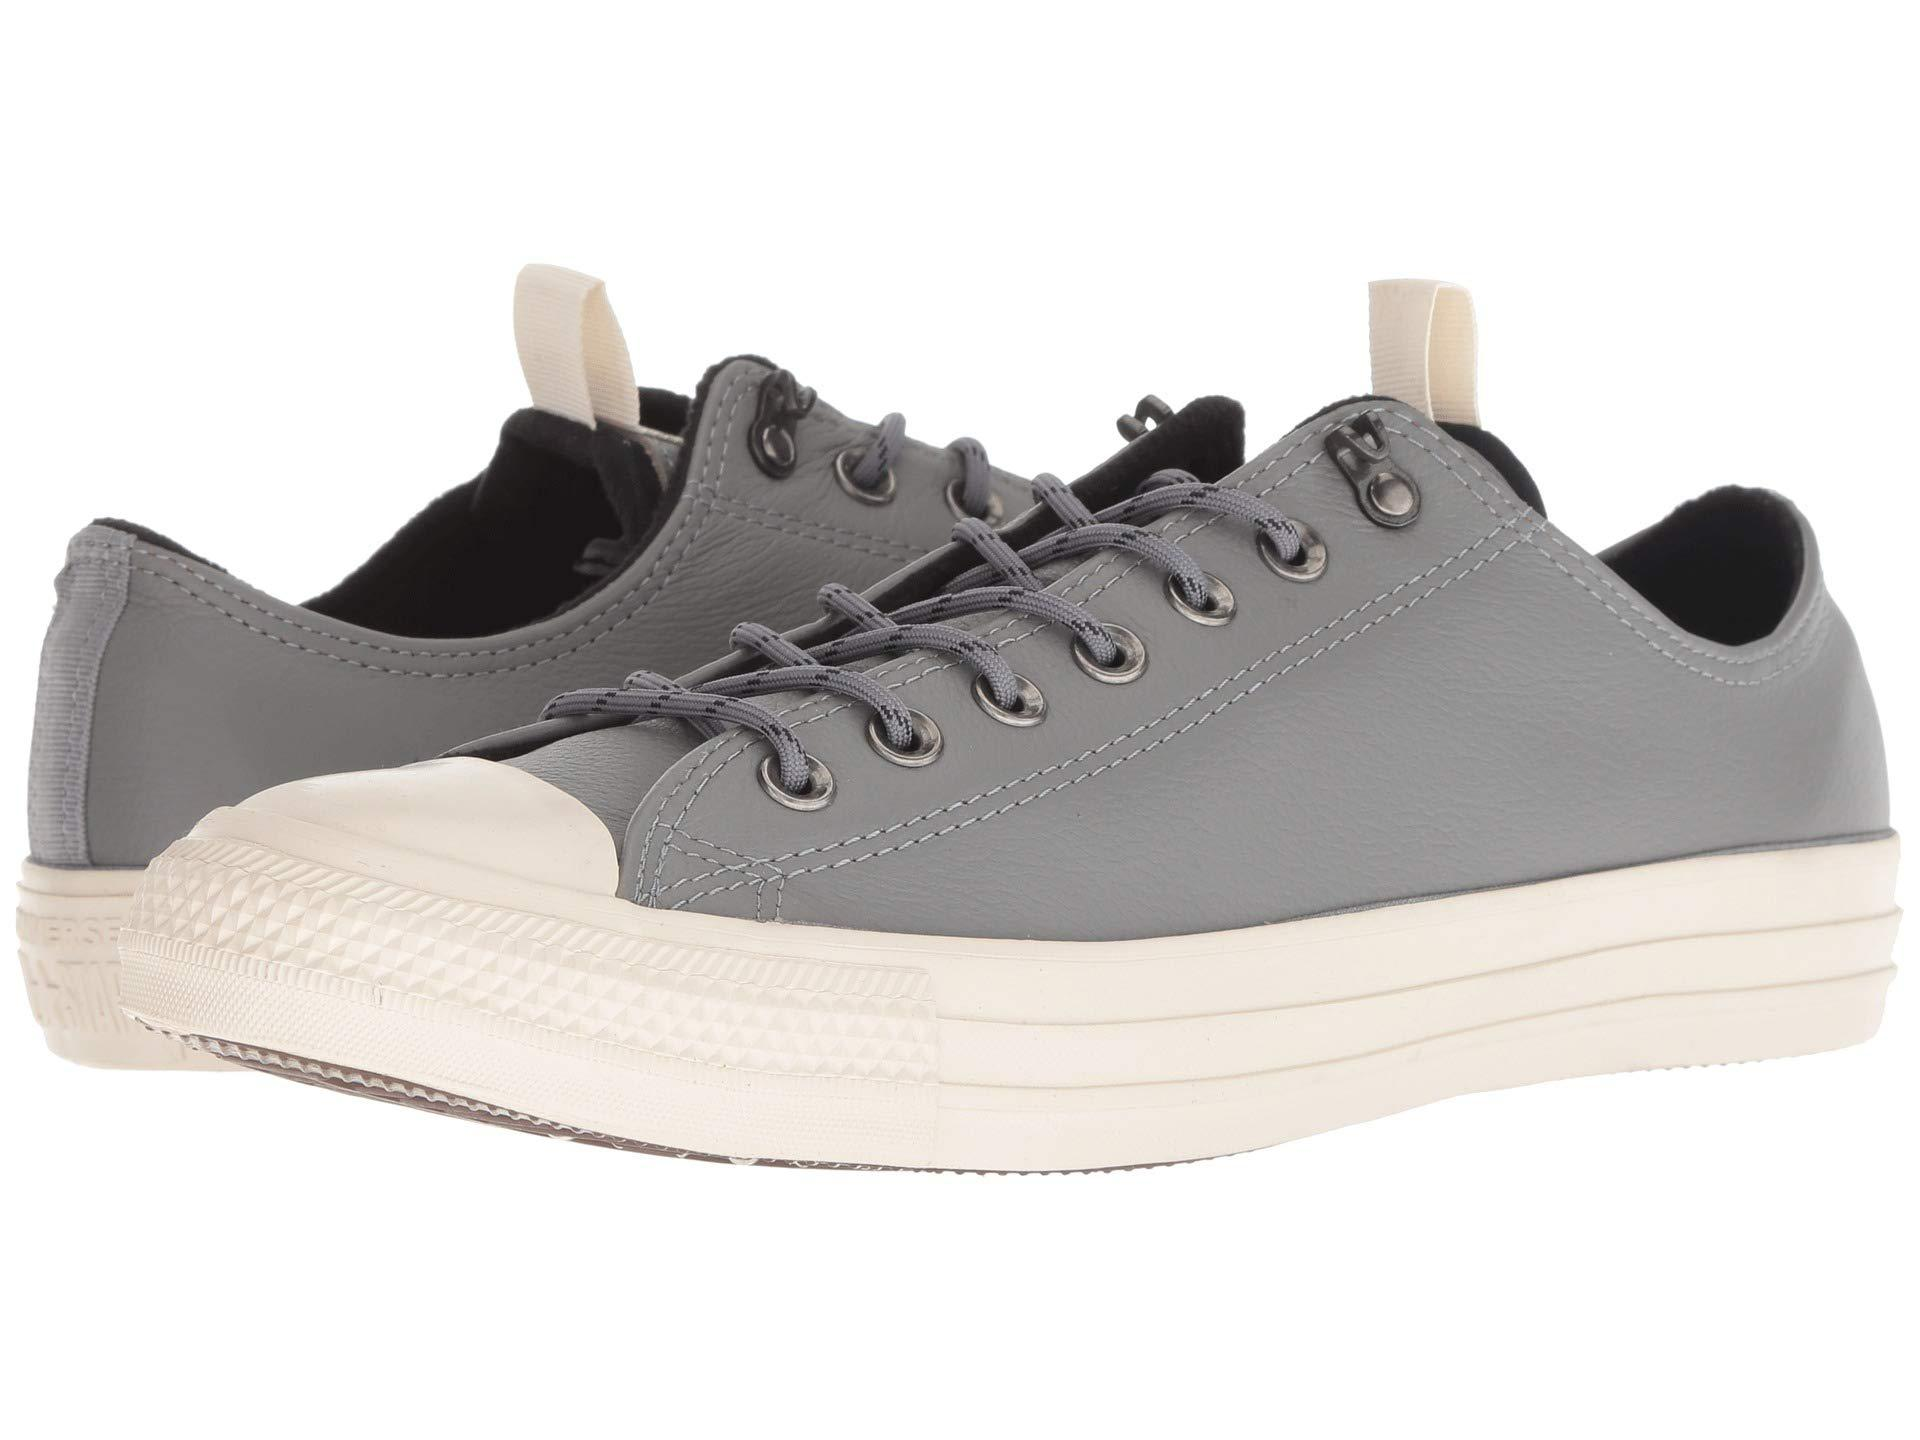 3461a38910d4 Lyst - Converse Chuck Taylor All Star Leather - Ox (mason black ...